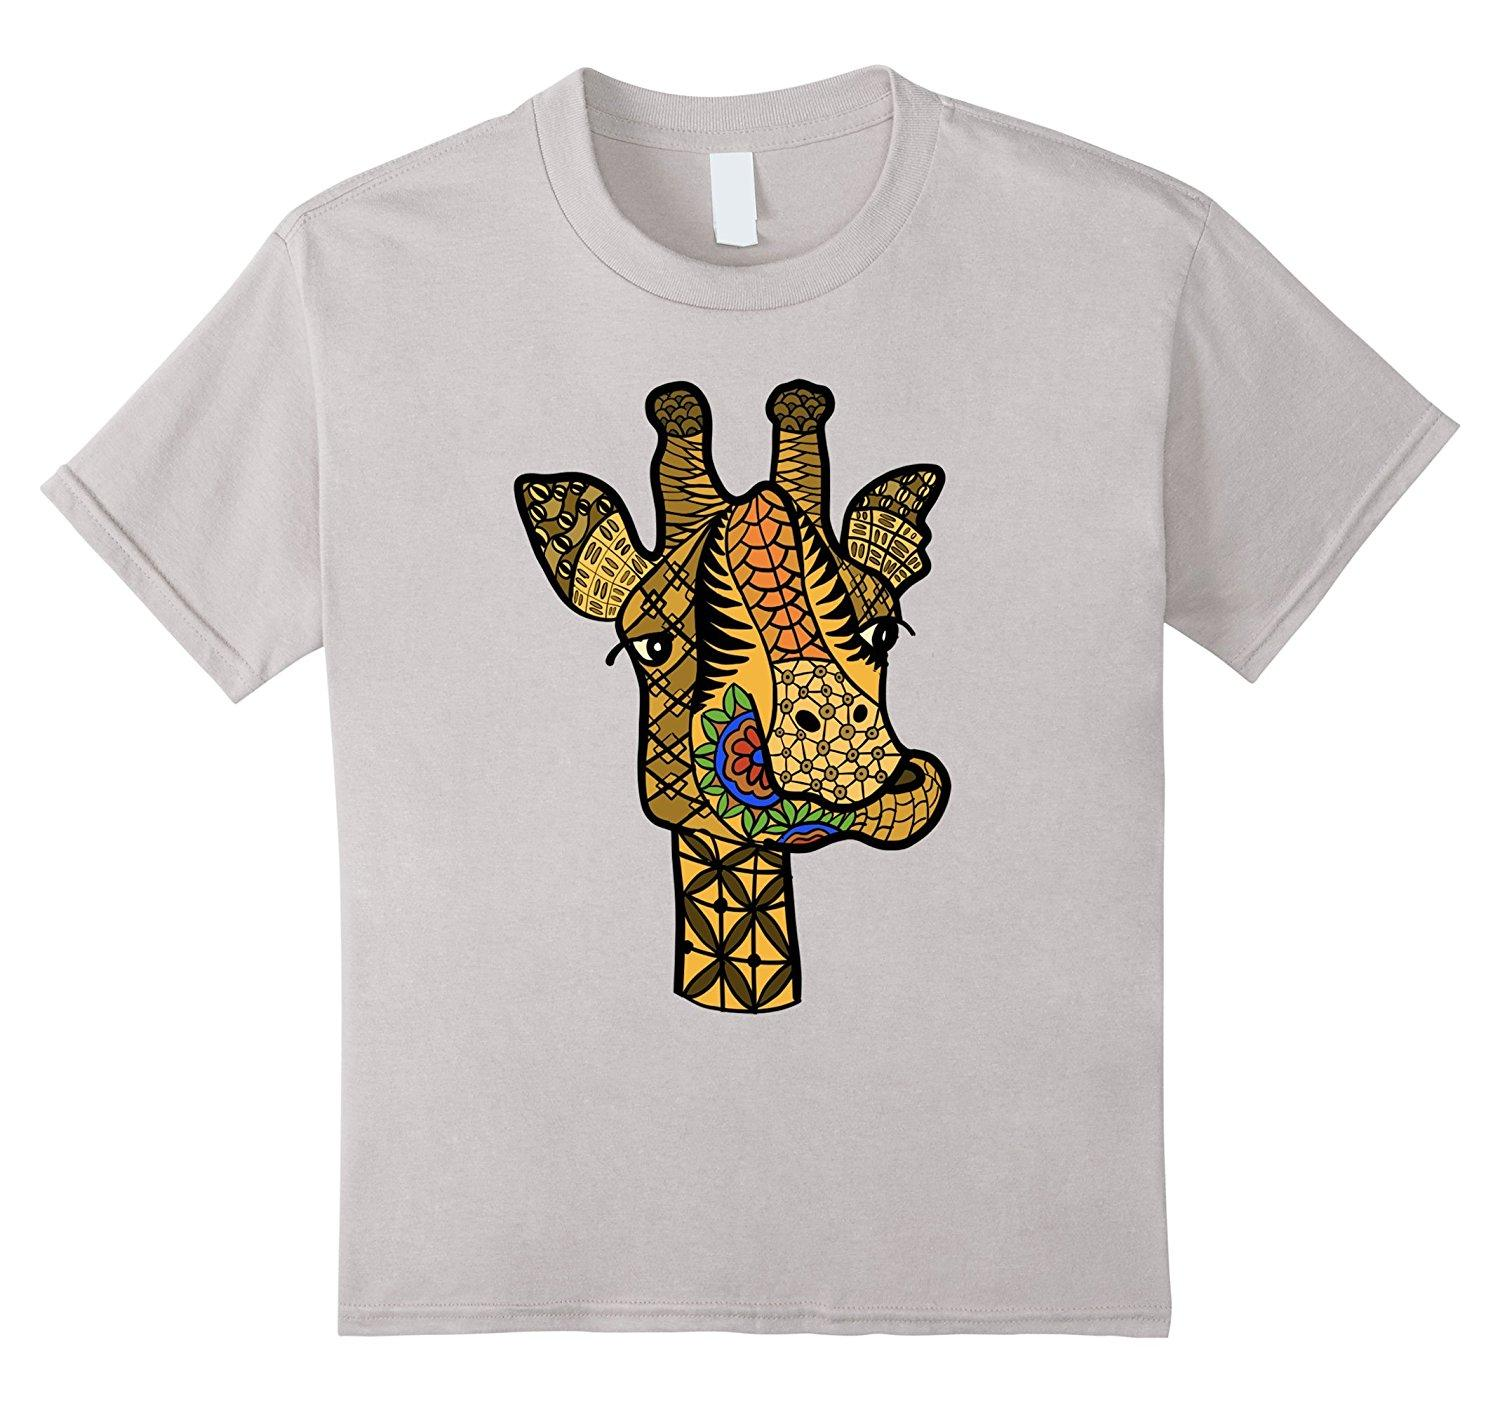 3205b5f6 Women's Tee Giraffe Shirts : Bright Tangle Art Giraffe T-shirt Short Sleeve  Round Neck Sexy T Shirt Women Tops Harajuku Brand Women Tops